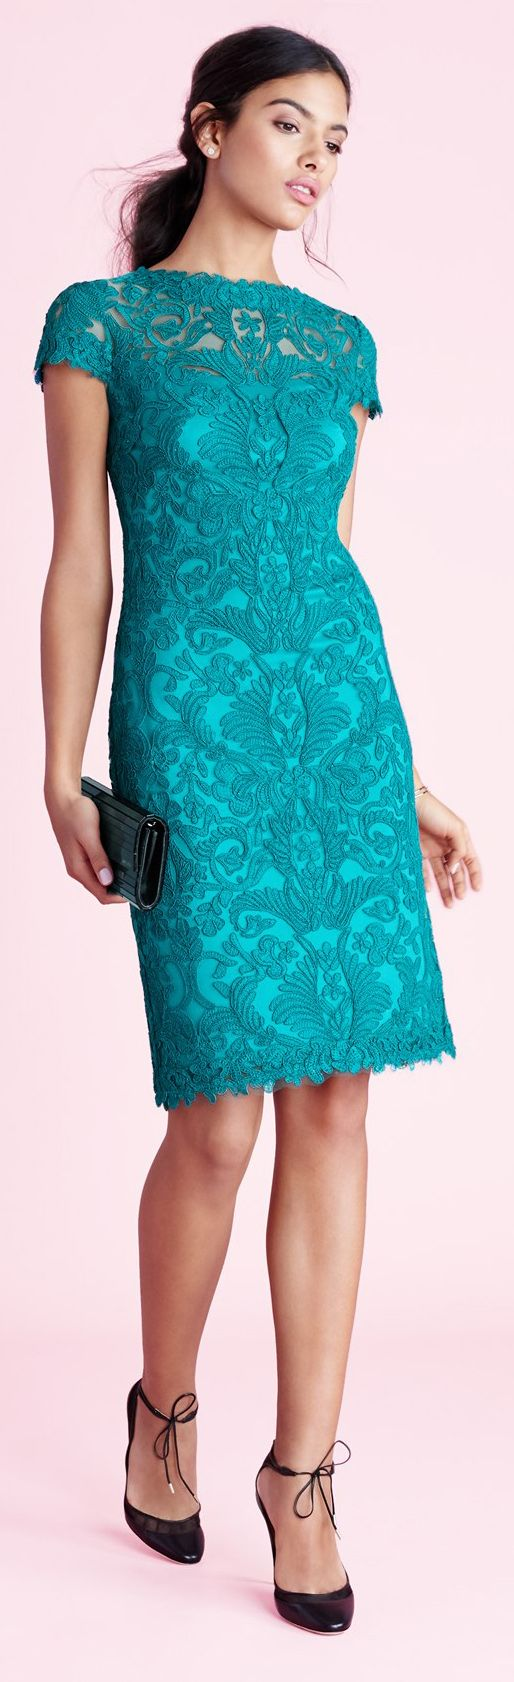 Tadashi Shoji blue turquoise lace dress women fashion outfit clothing style apparel @roressclothes closet ideas